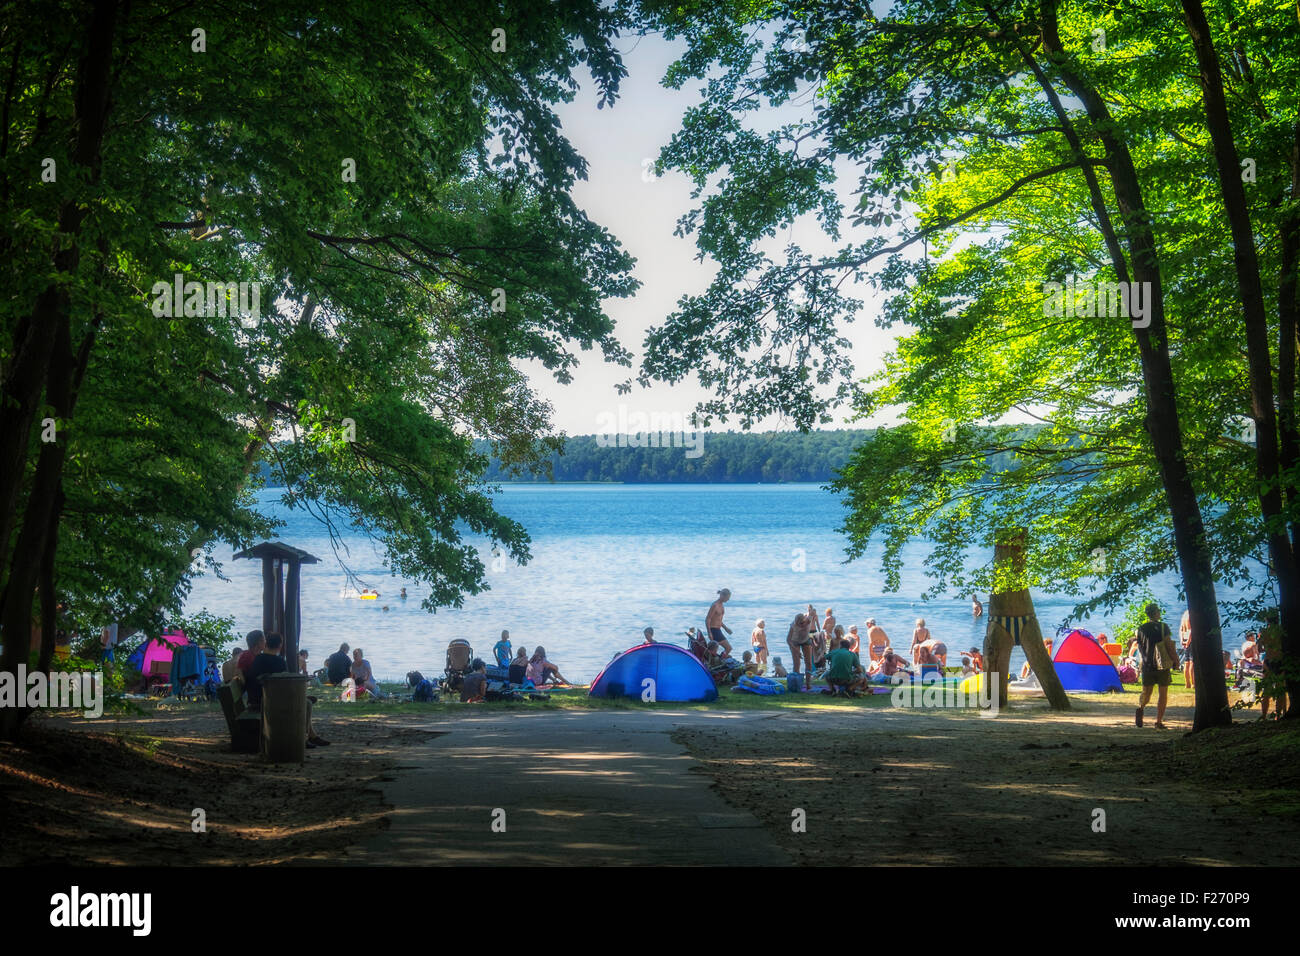 Blue lake, trees, swimmers, sunbathers and tents at Großer Stechlinsee, Lake Stechlin resort, Brandenburg, - Stock Image